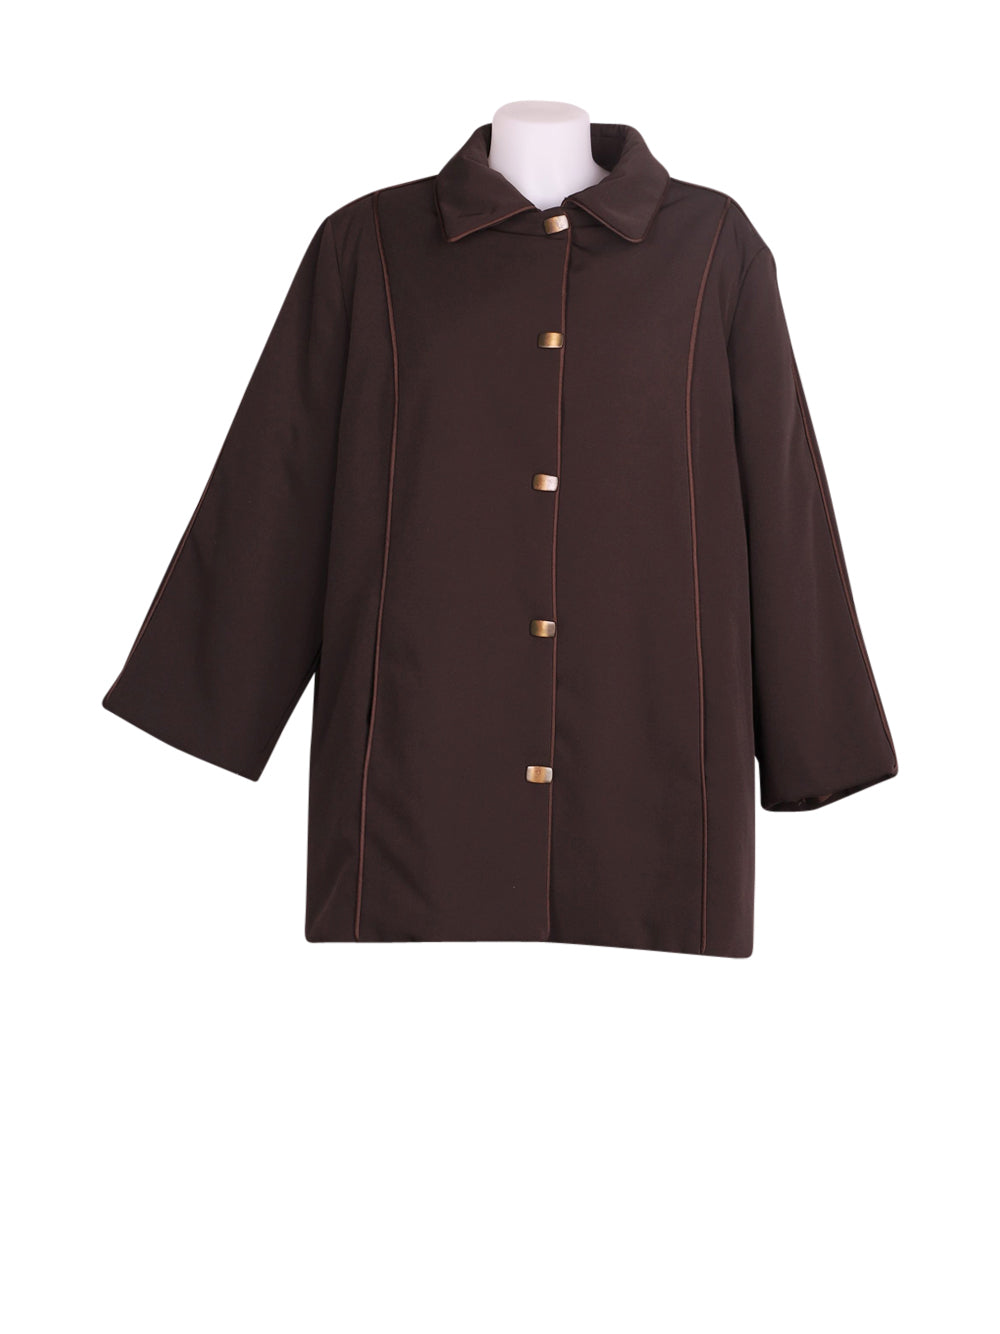 Front photo of Preloved Anna Linder Brown Woman's jacket - size 12/L